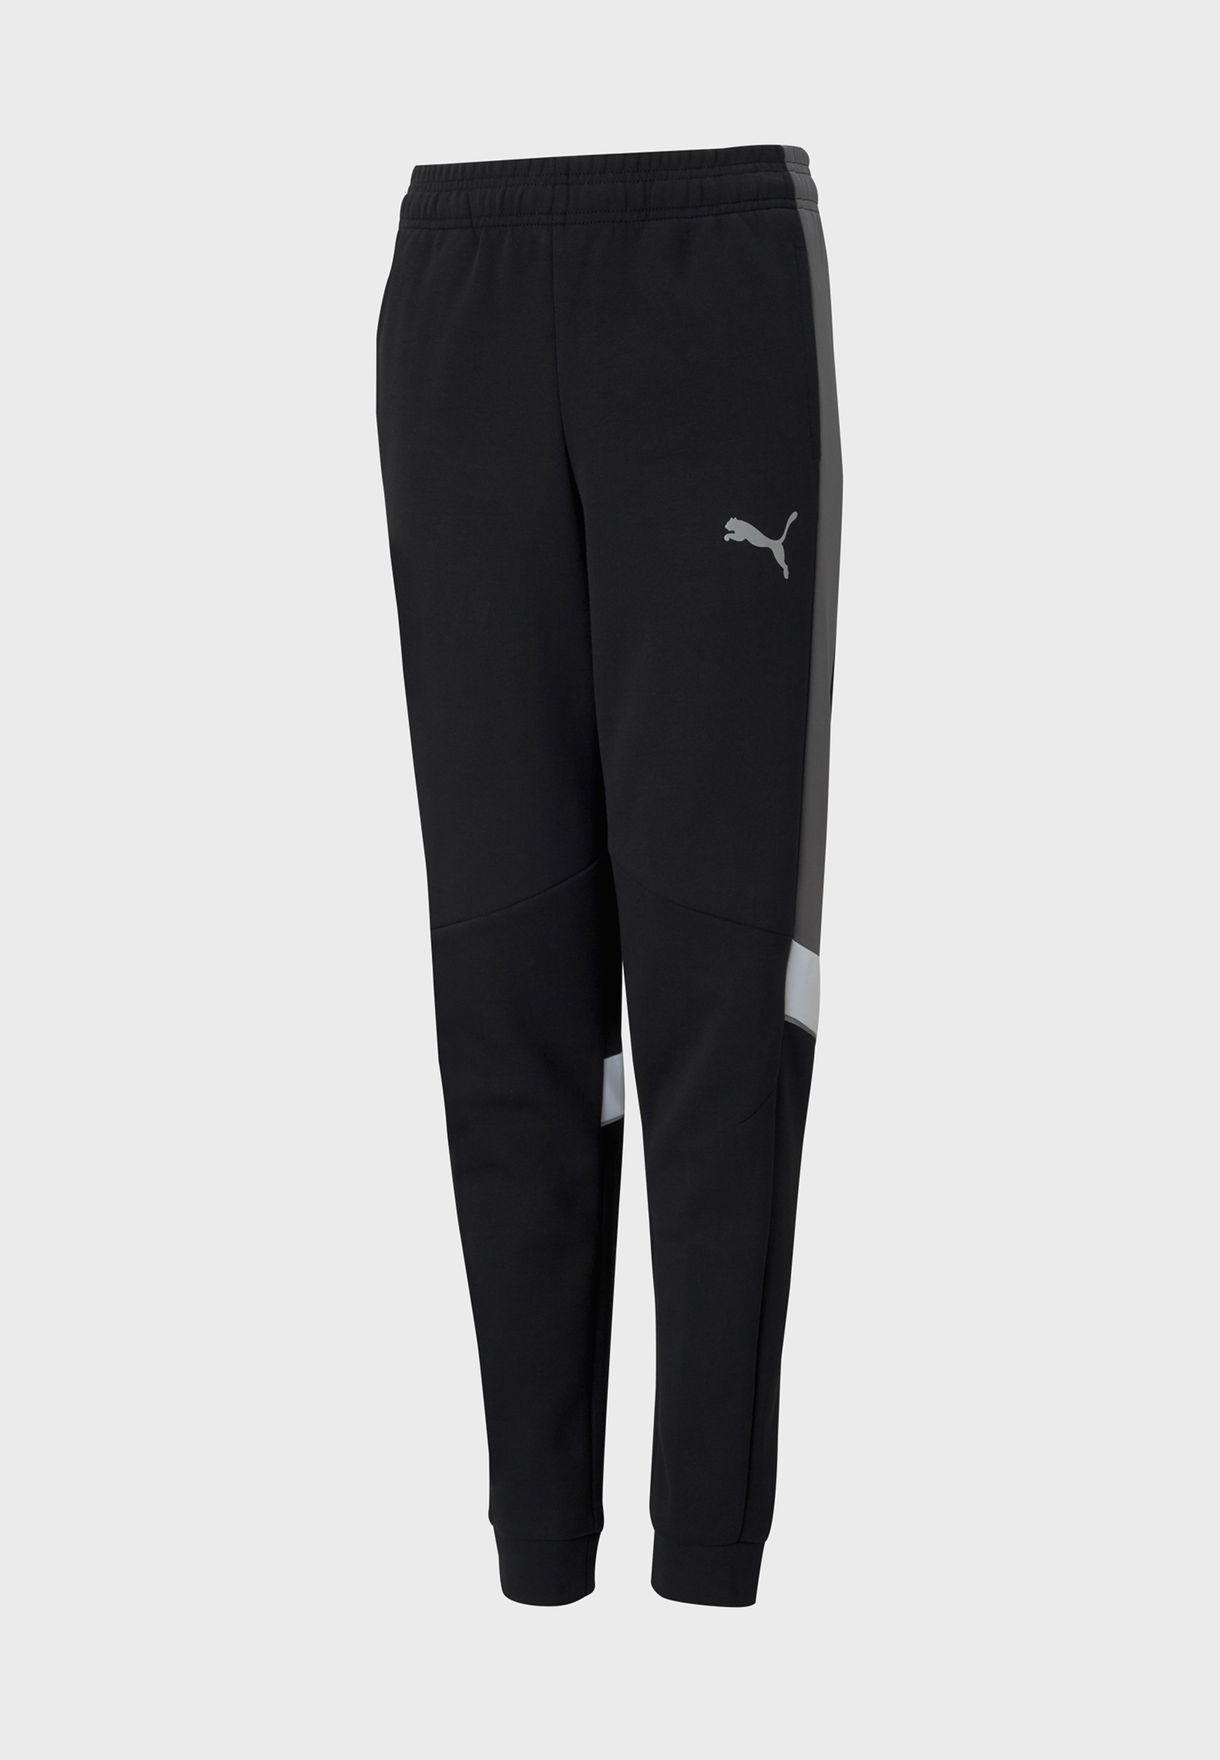 Youth Active Sports Sweatpants